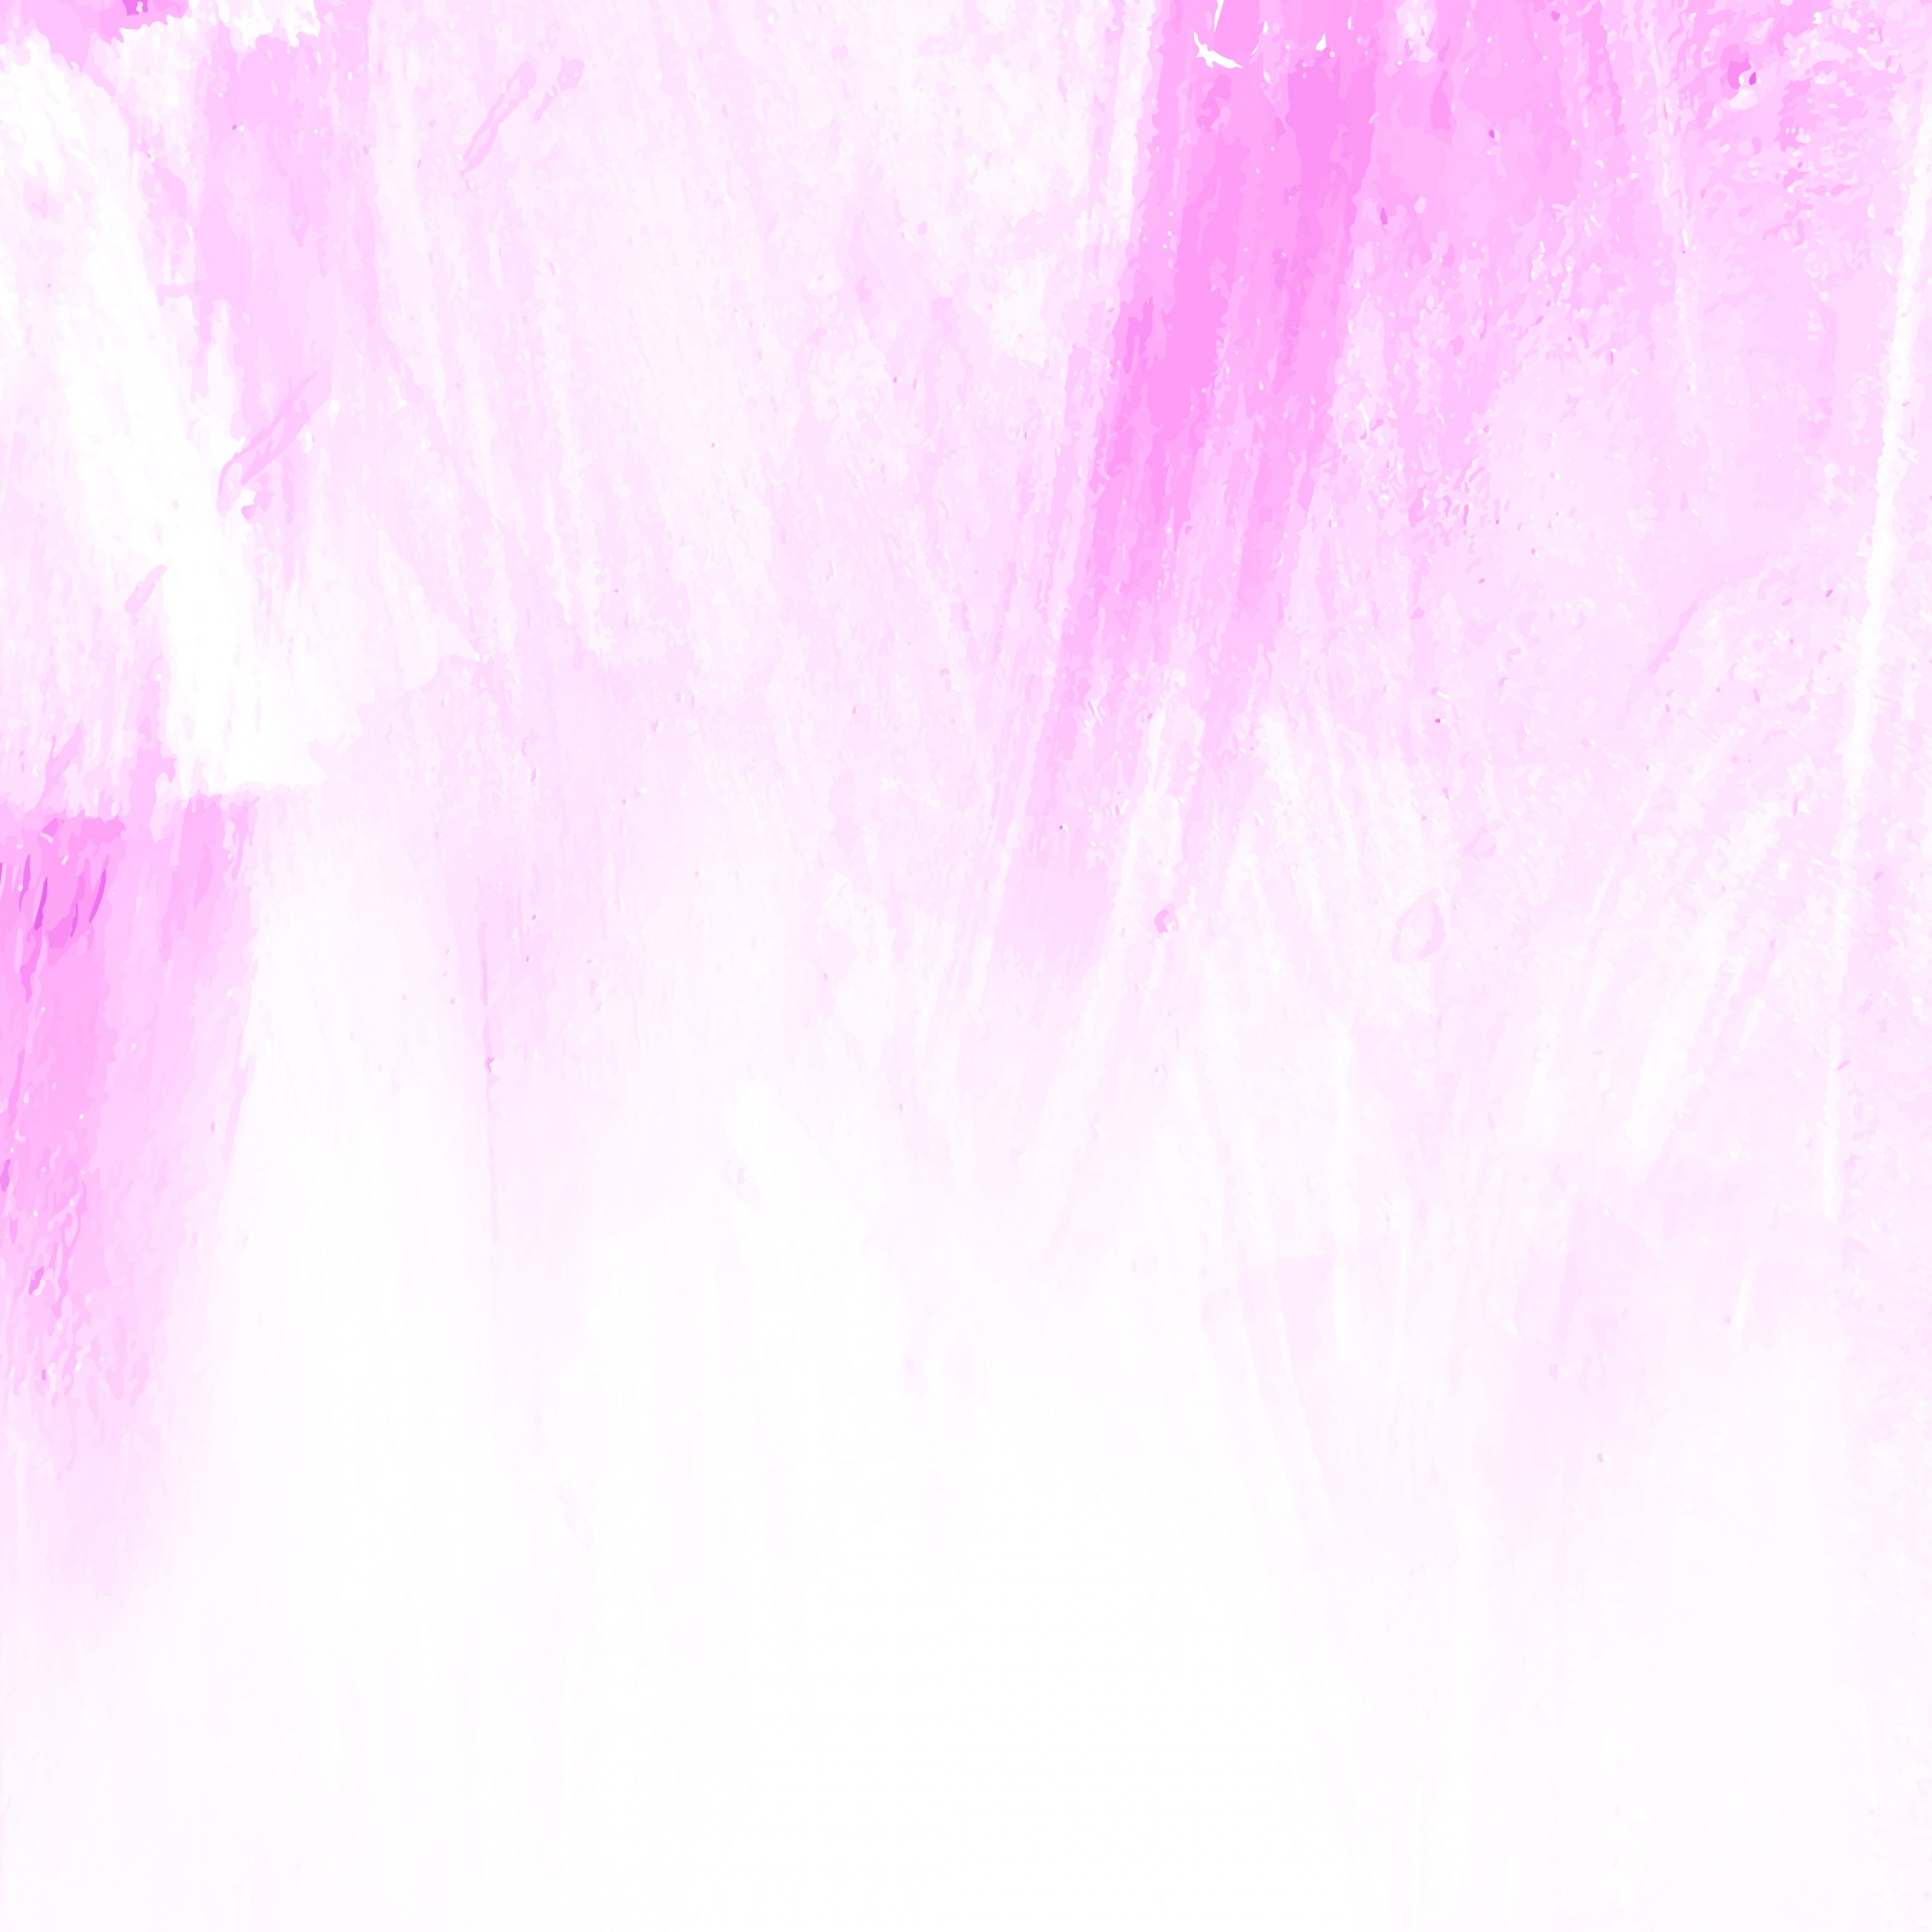 Abstract elegant pink watercolor background